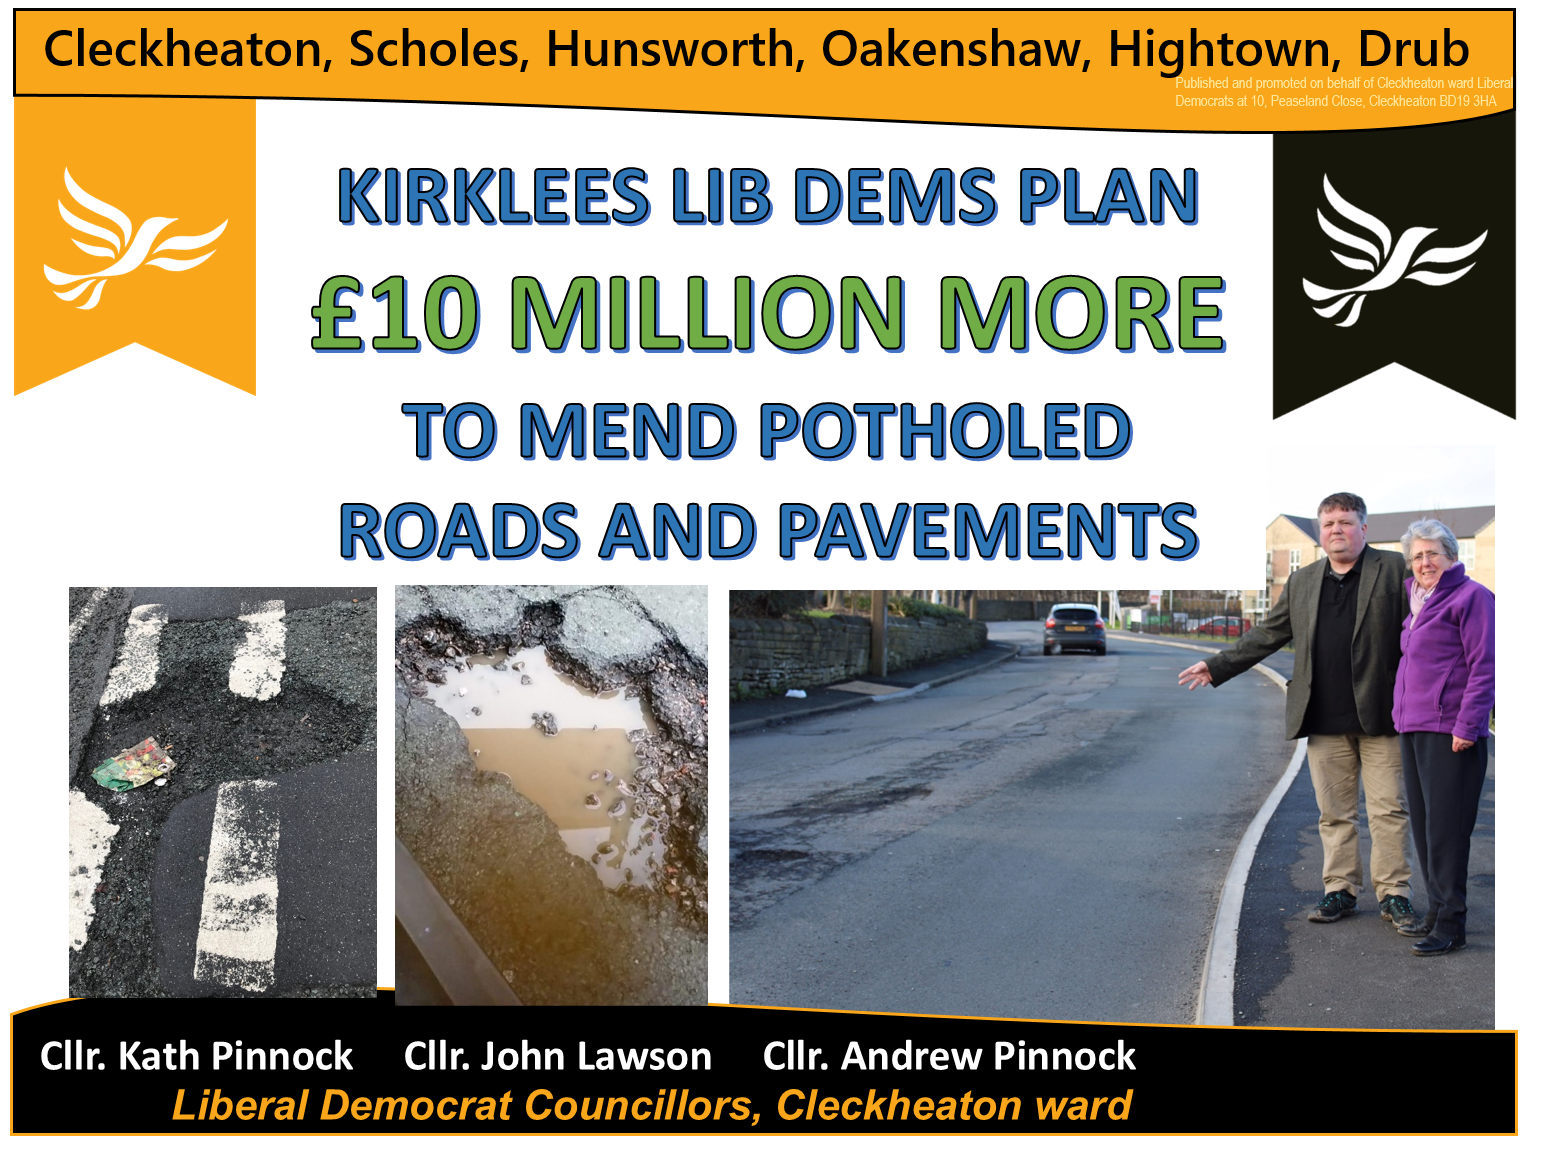 Potholes, among very many, in Cleckheaton reported for repair